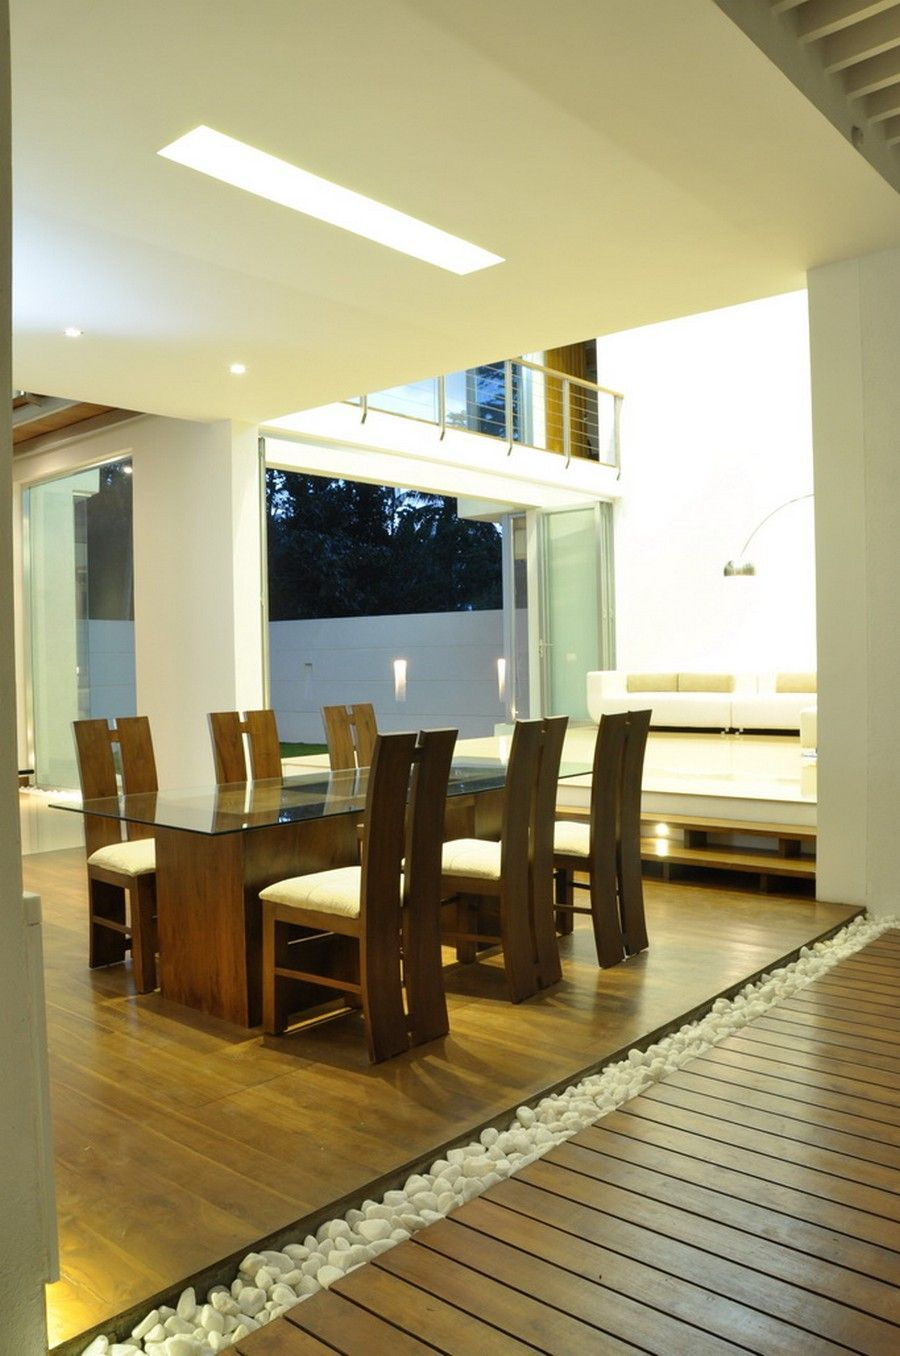 Designs Of Rooms: Modern Home Interior Designs In Sri Lanka